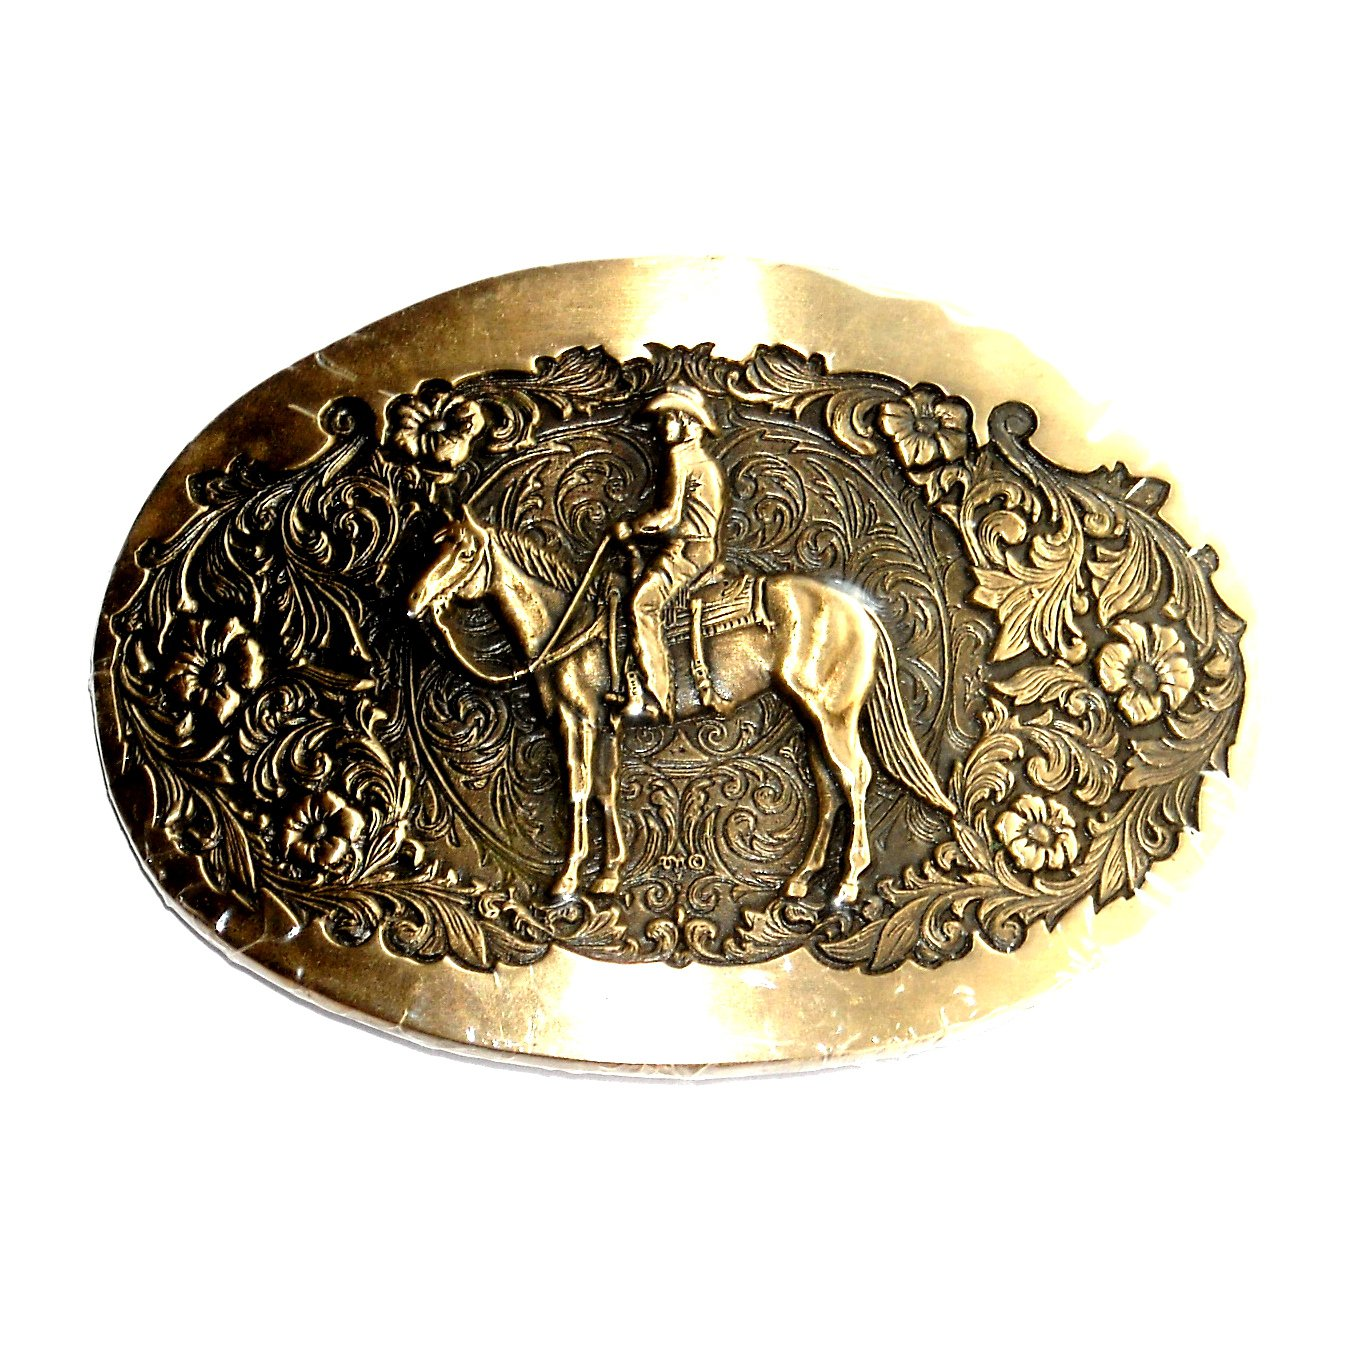 Cowboy Award Design Solid Brass Belt Buckle